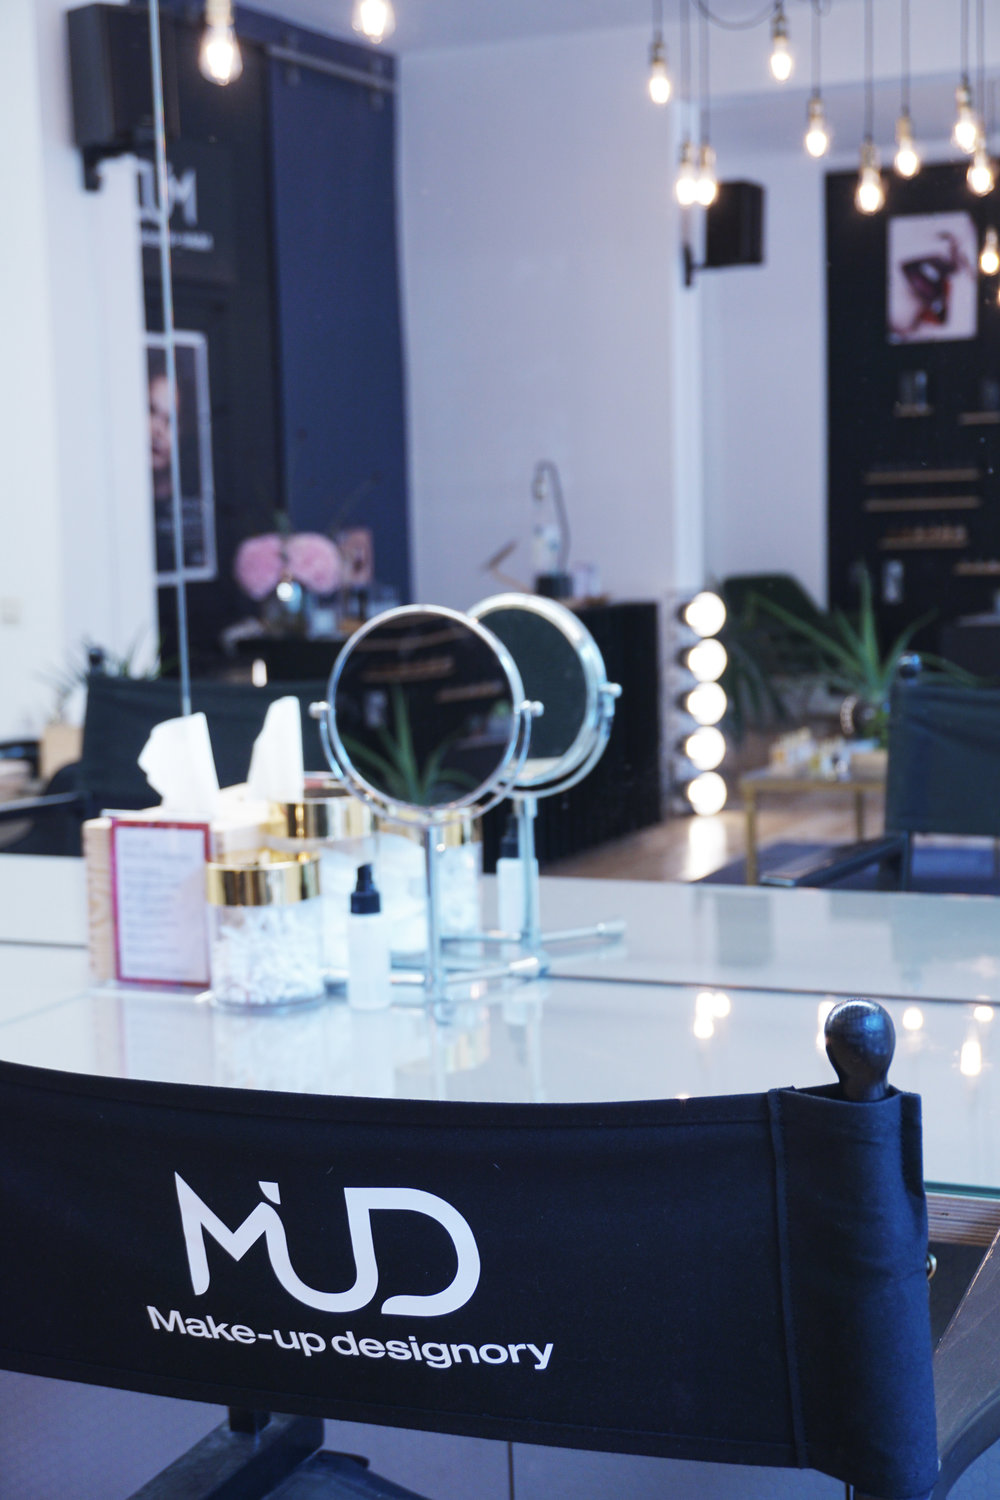 Makeupstation_MudStudio_berlin